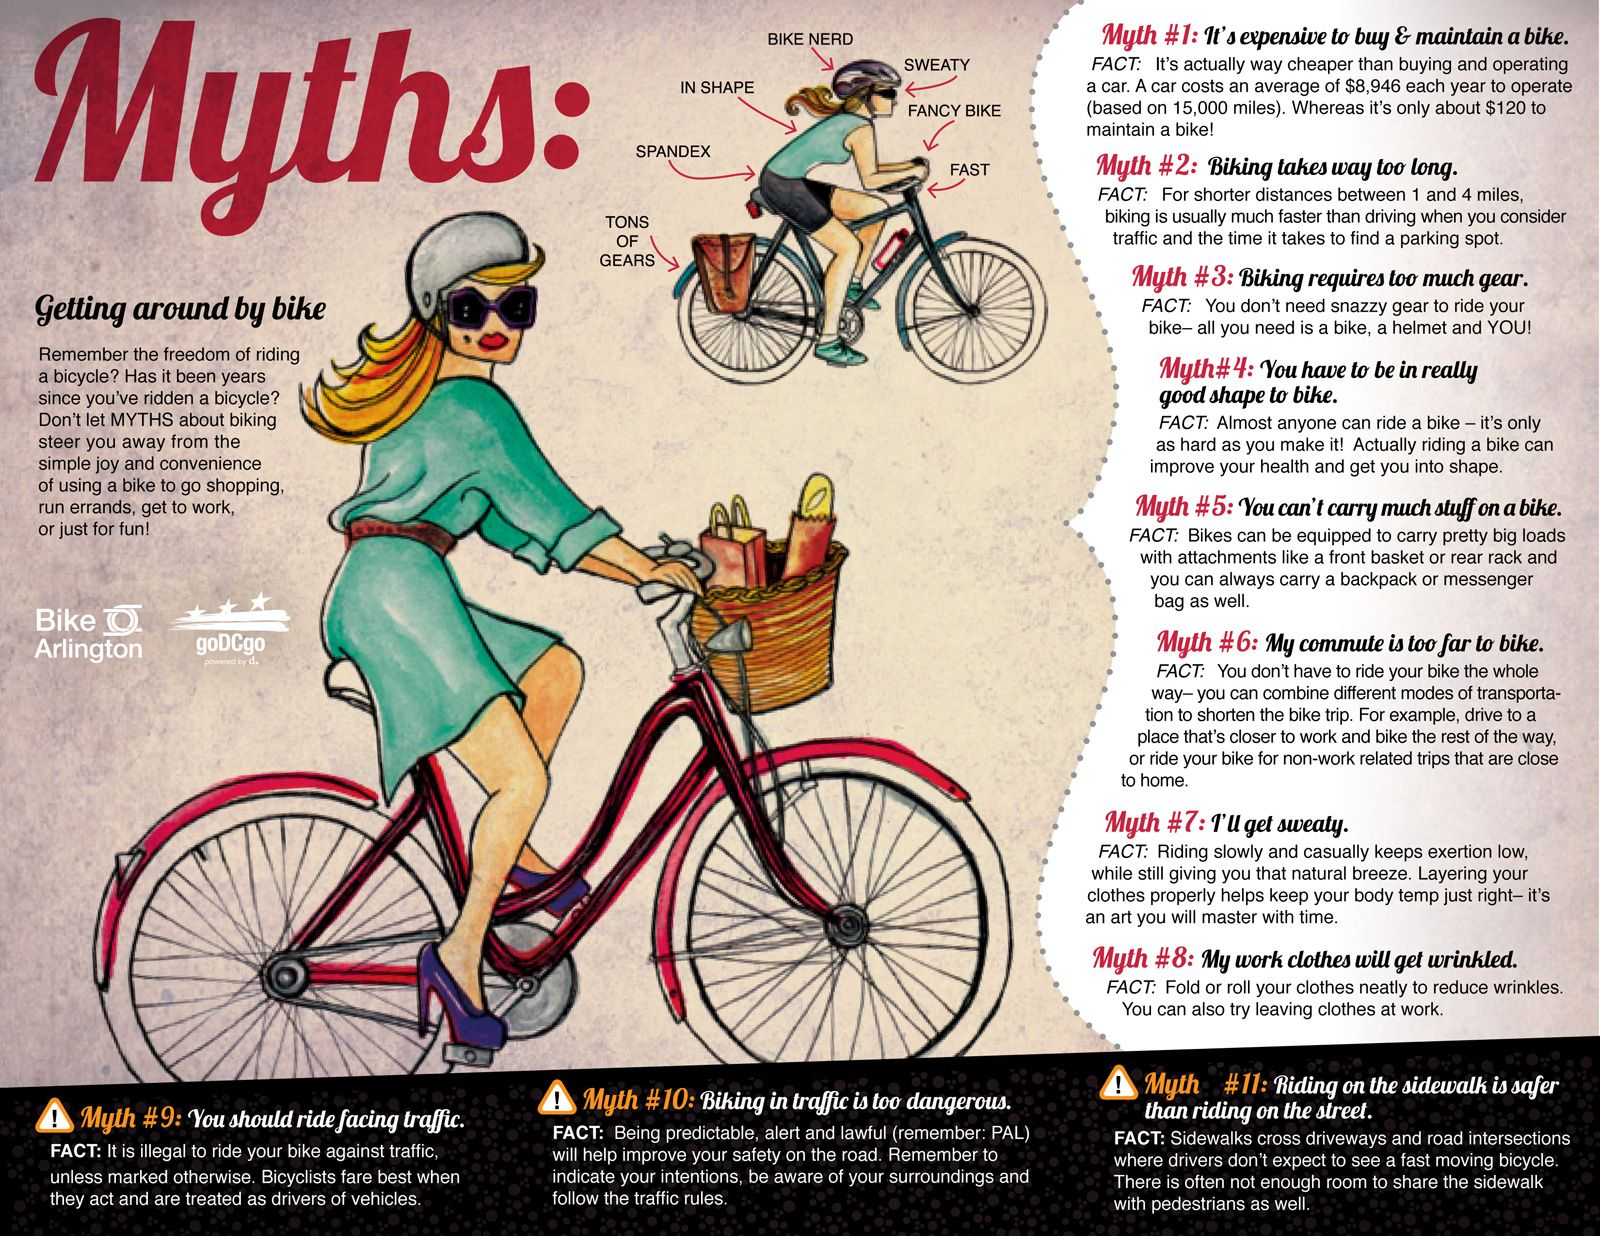 Does Your Friend Use A Bunch Of Myths About Biking As Excuses Not